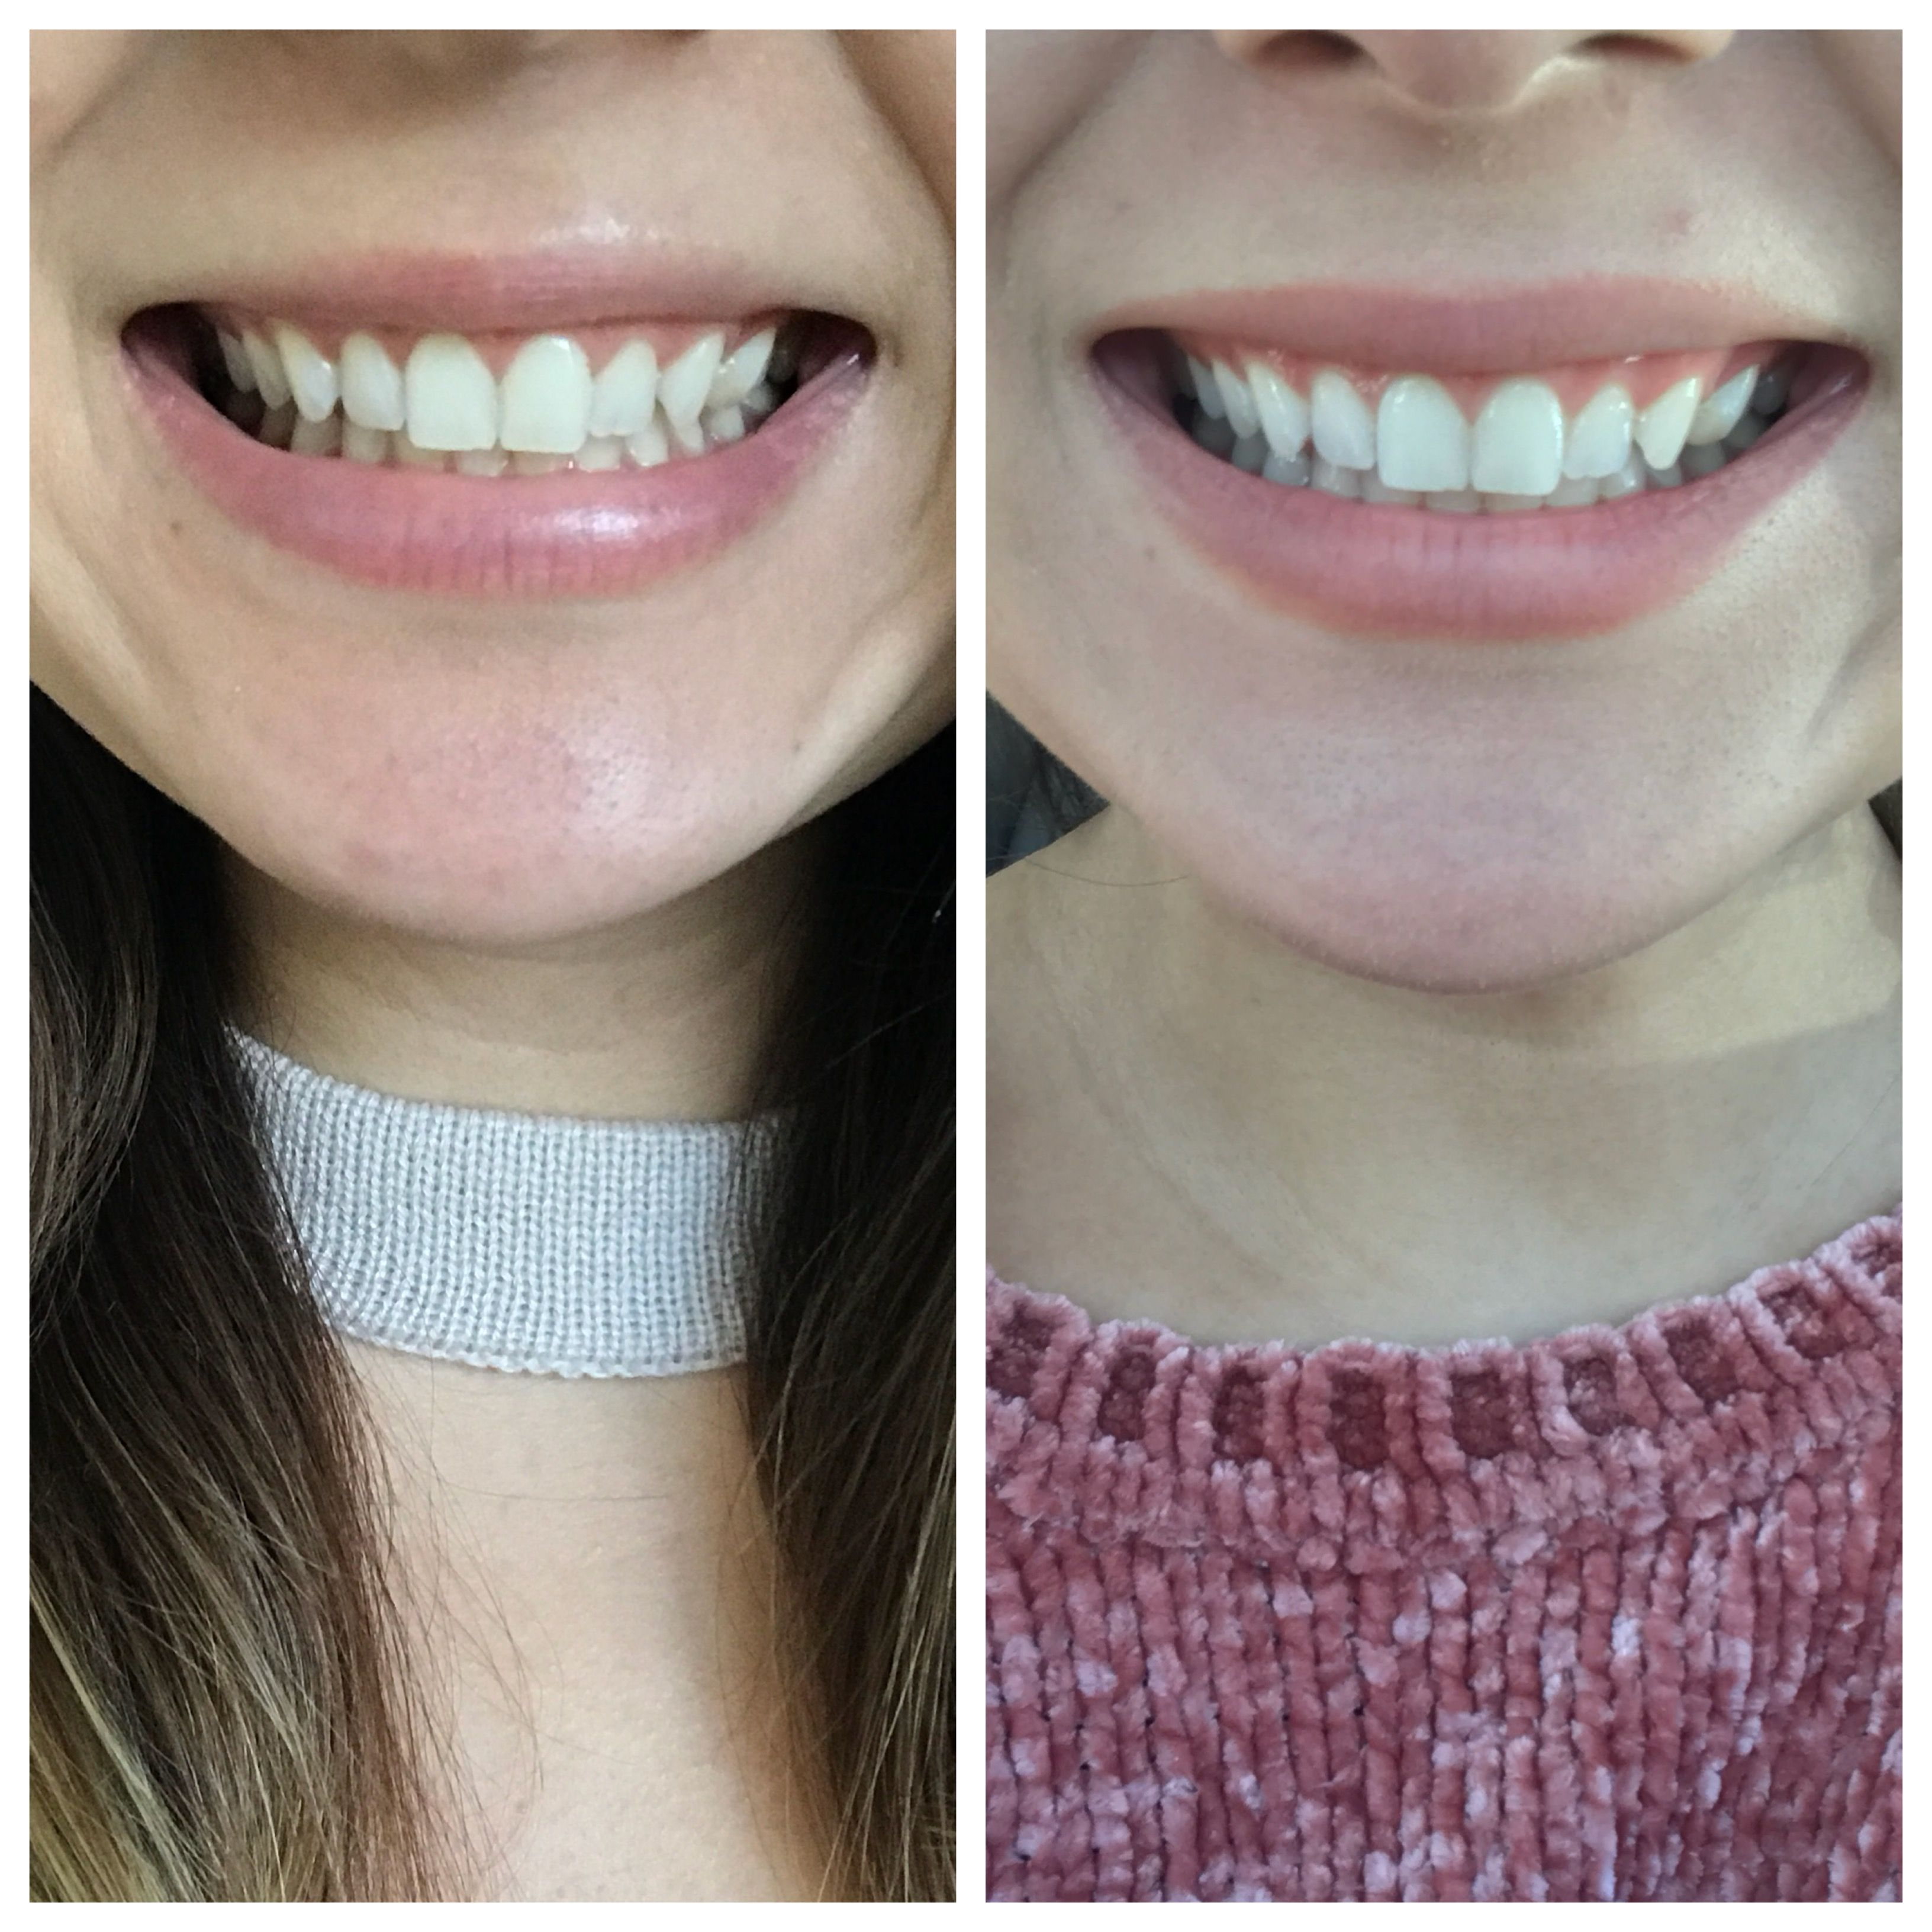 Pin On Teeth Whitening Before And After